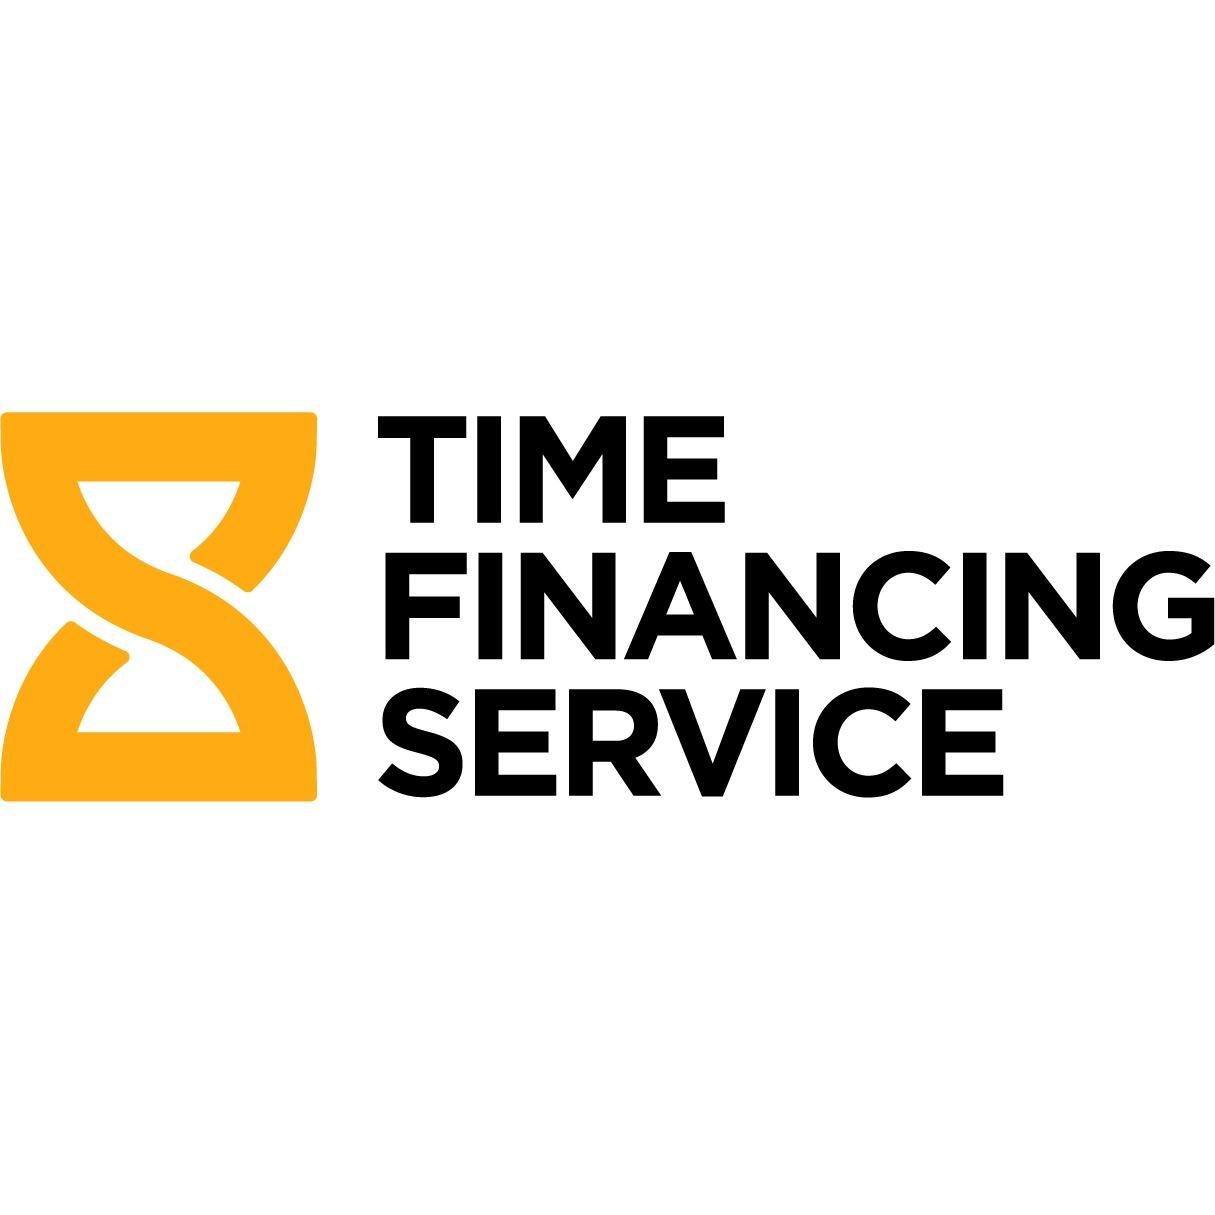 Time Financing Service